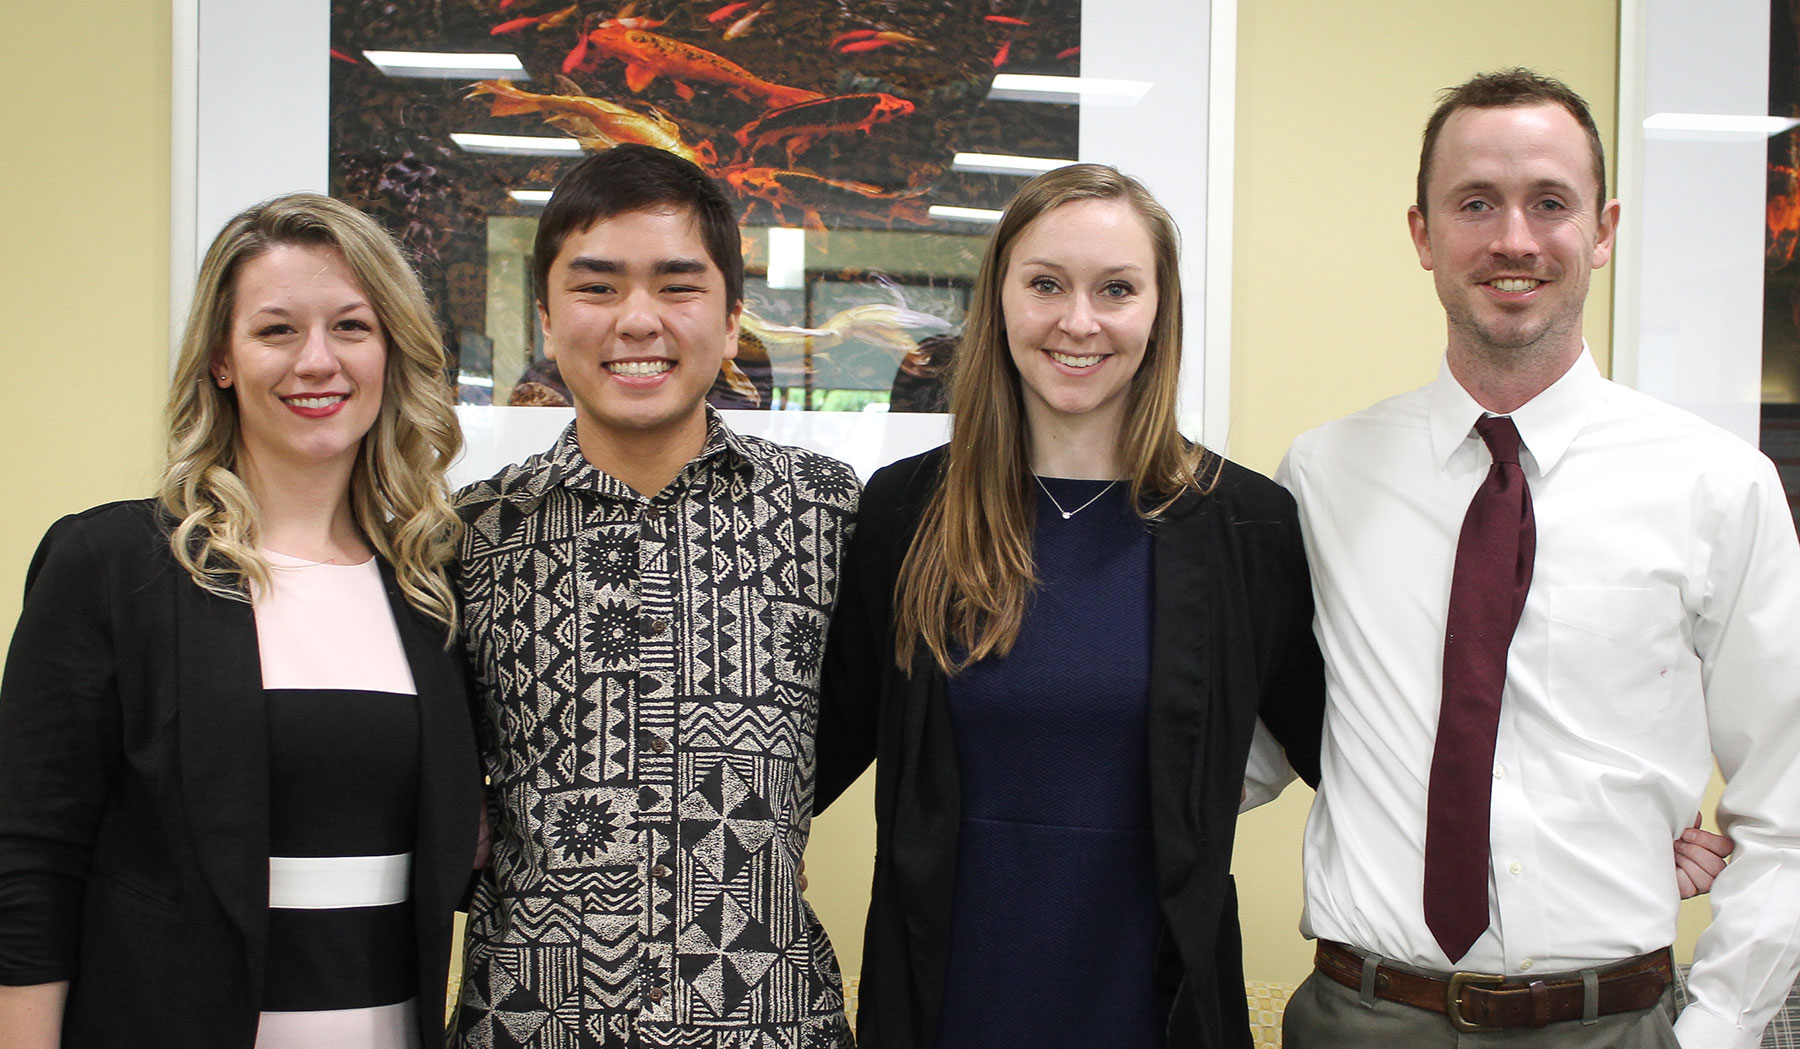 MPH graduating students Shelby Borowski, Travis Oishi, Kayla Septer, and Dylan Allanson